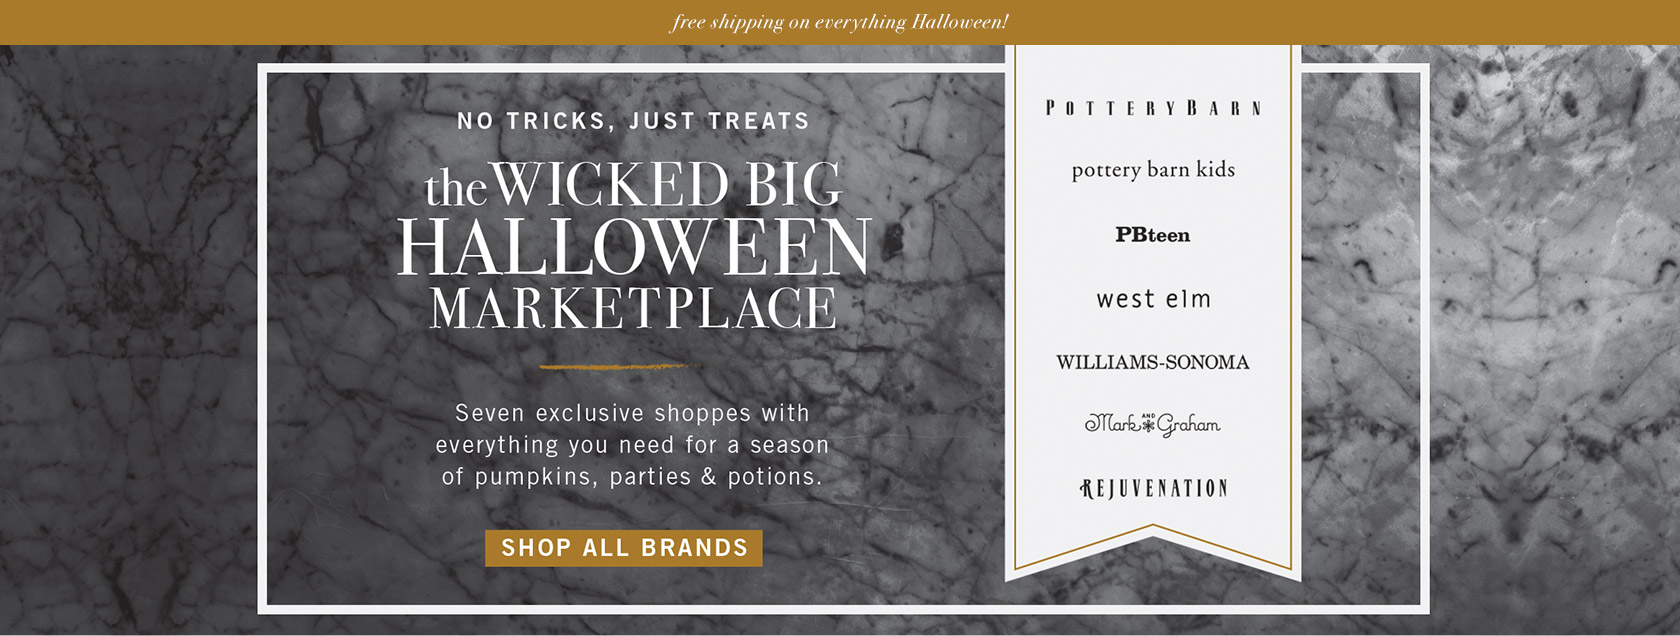 The Wicked Big Halloween Marketplace!